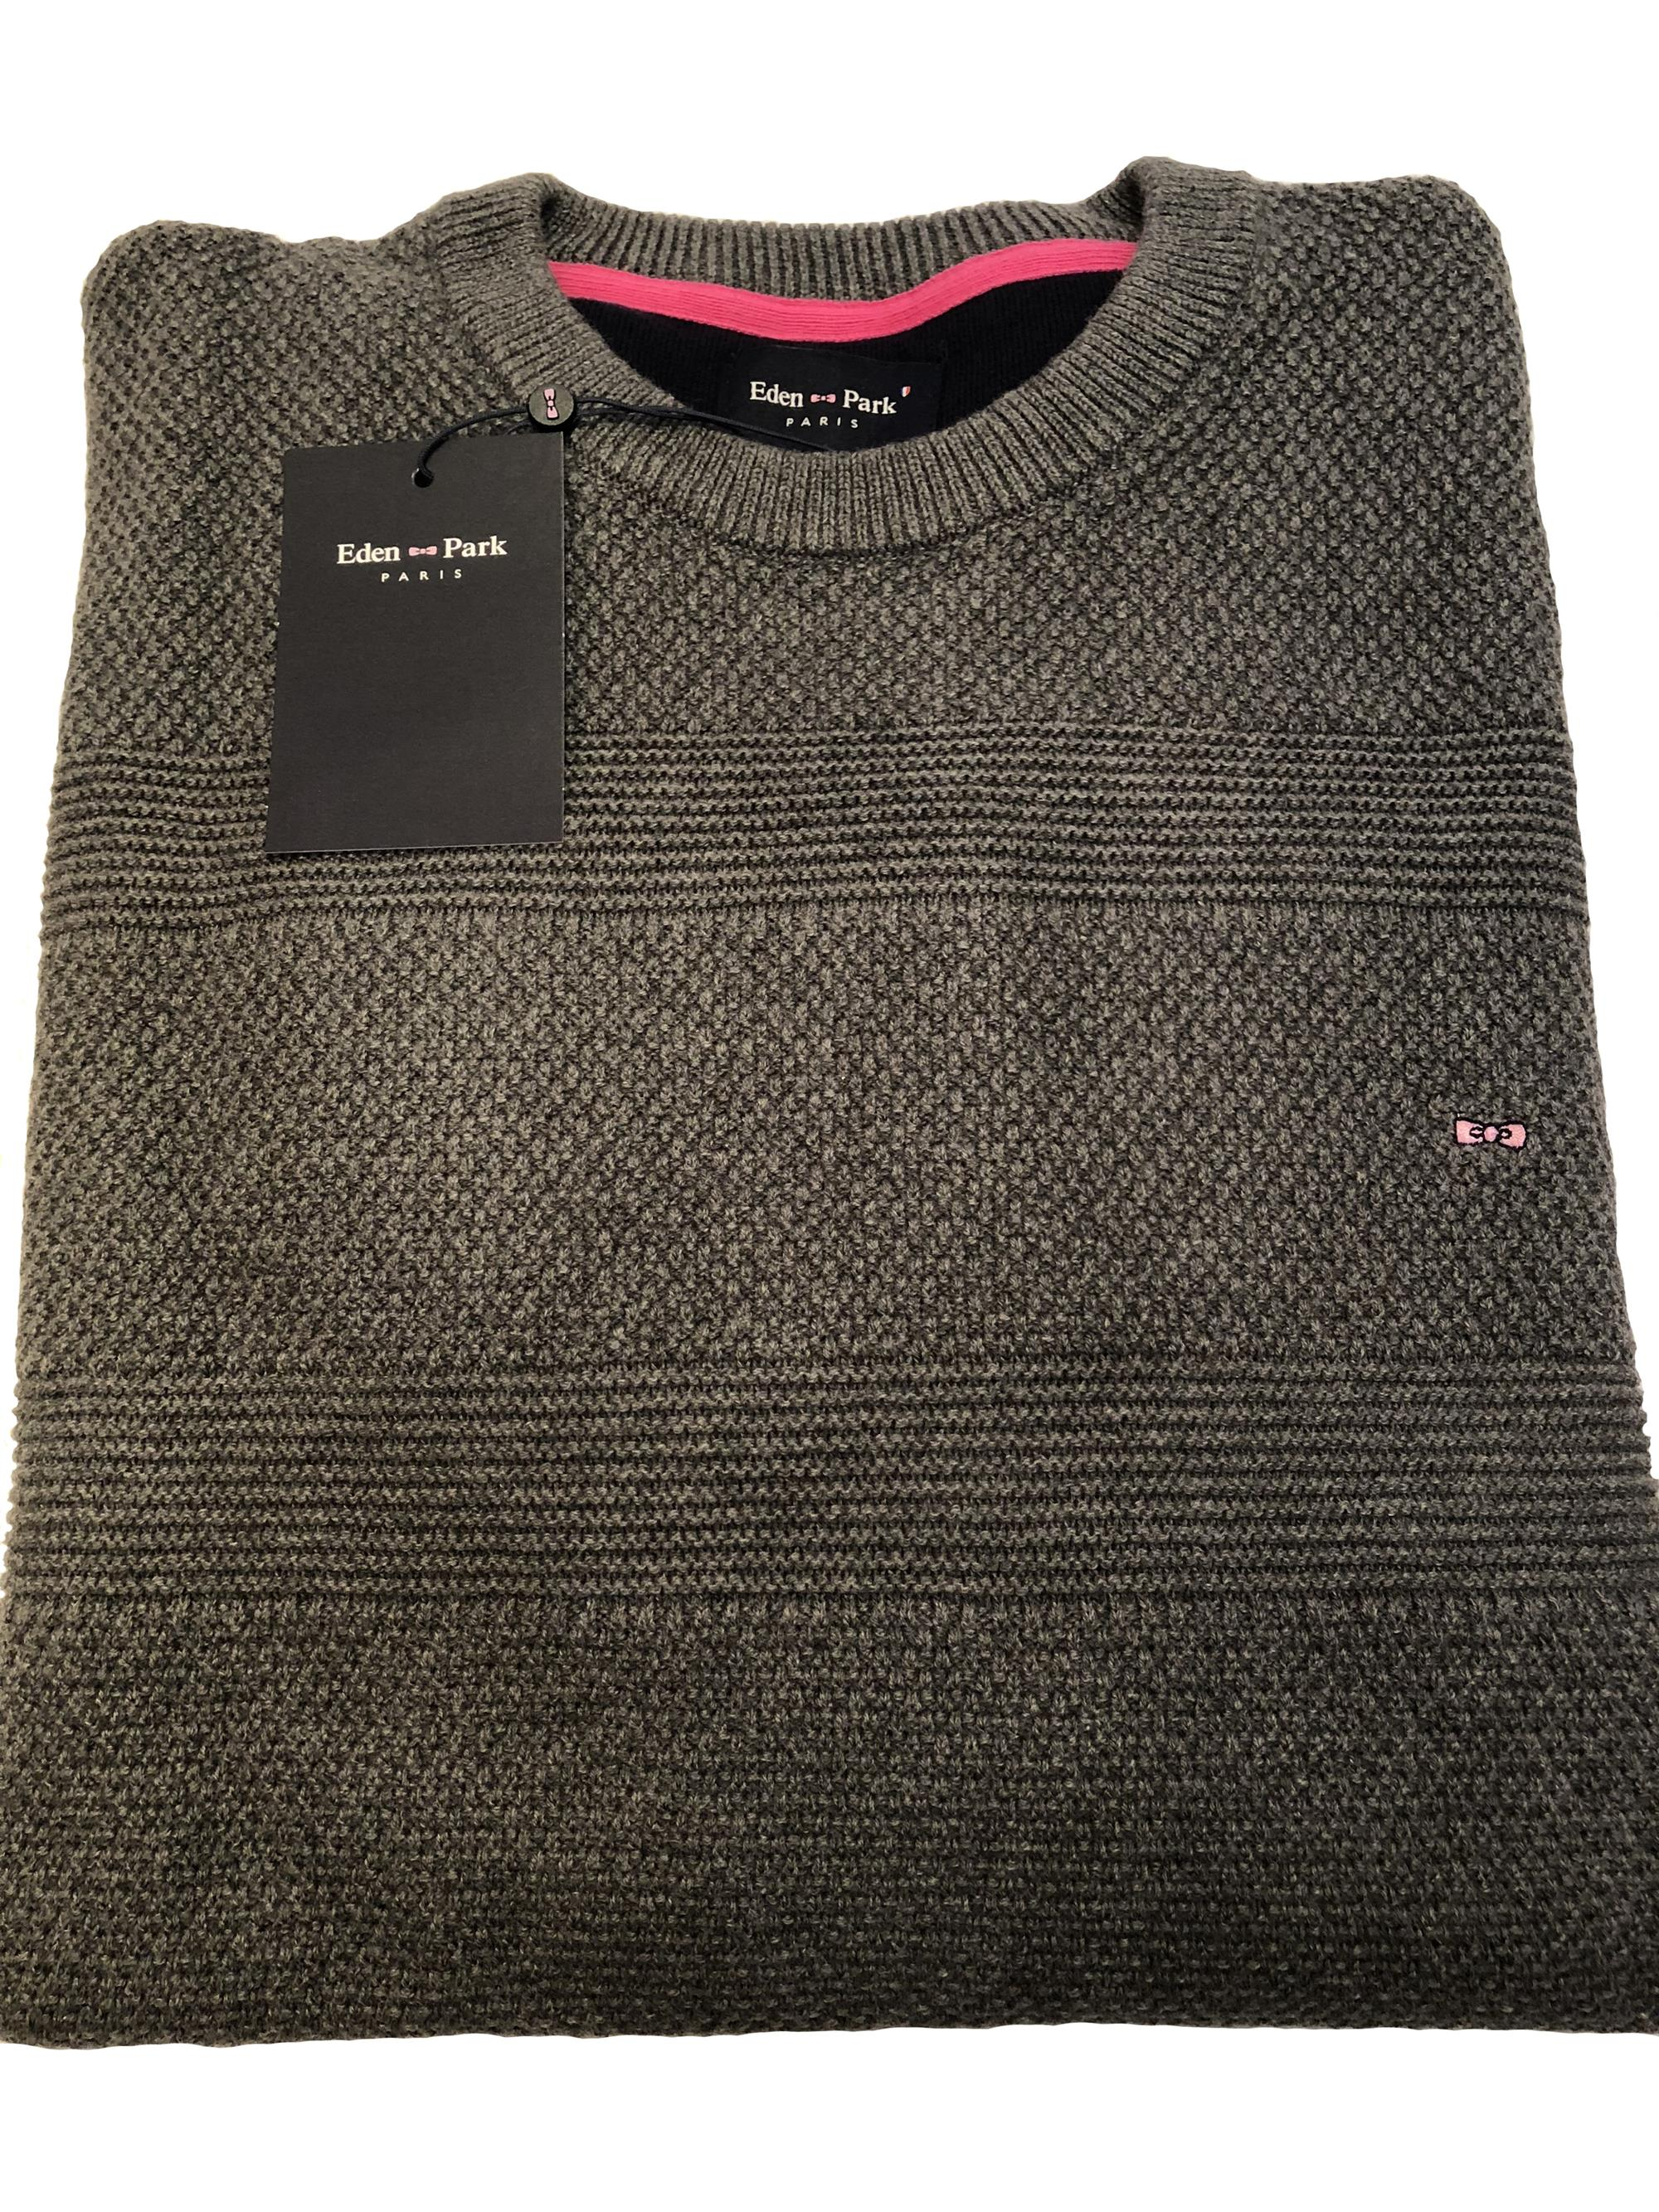 crew neck cable knit sweater (grey)